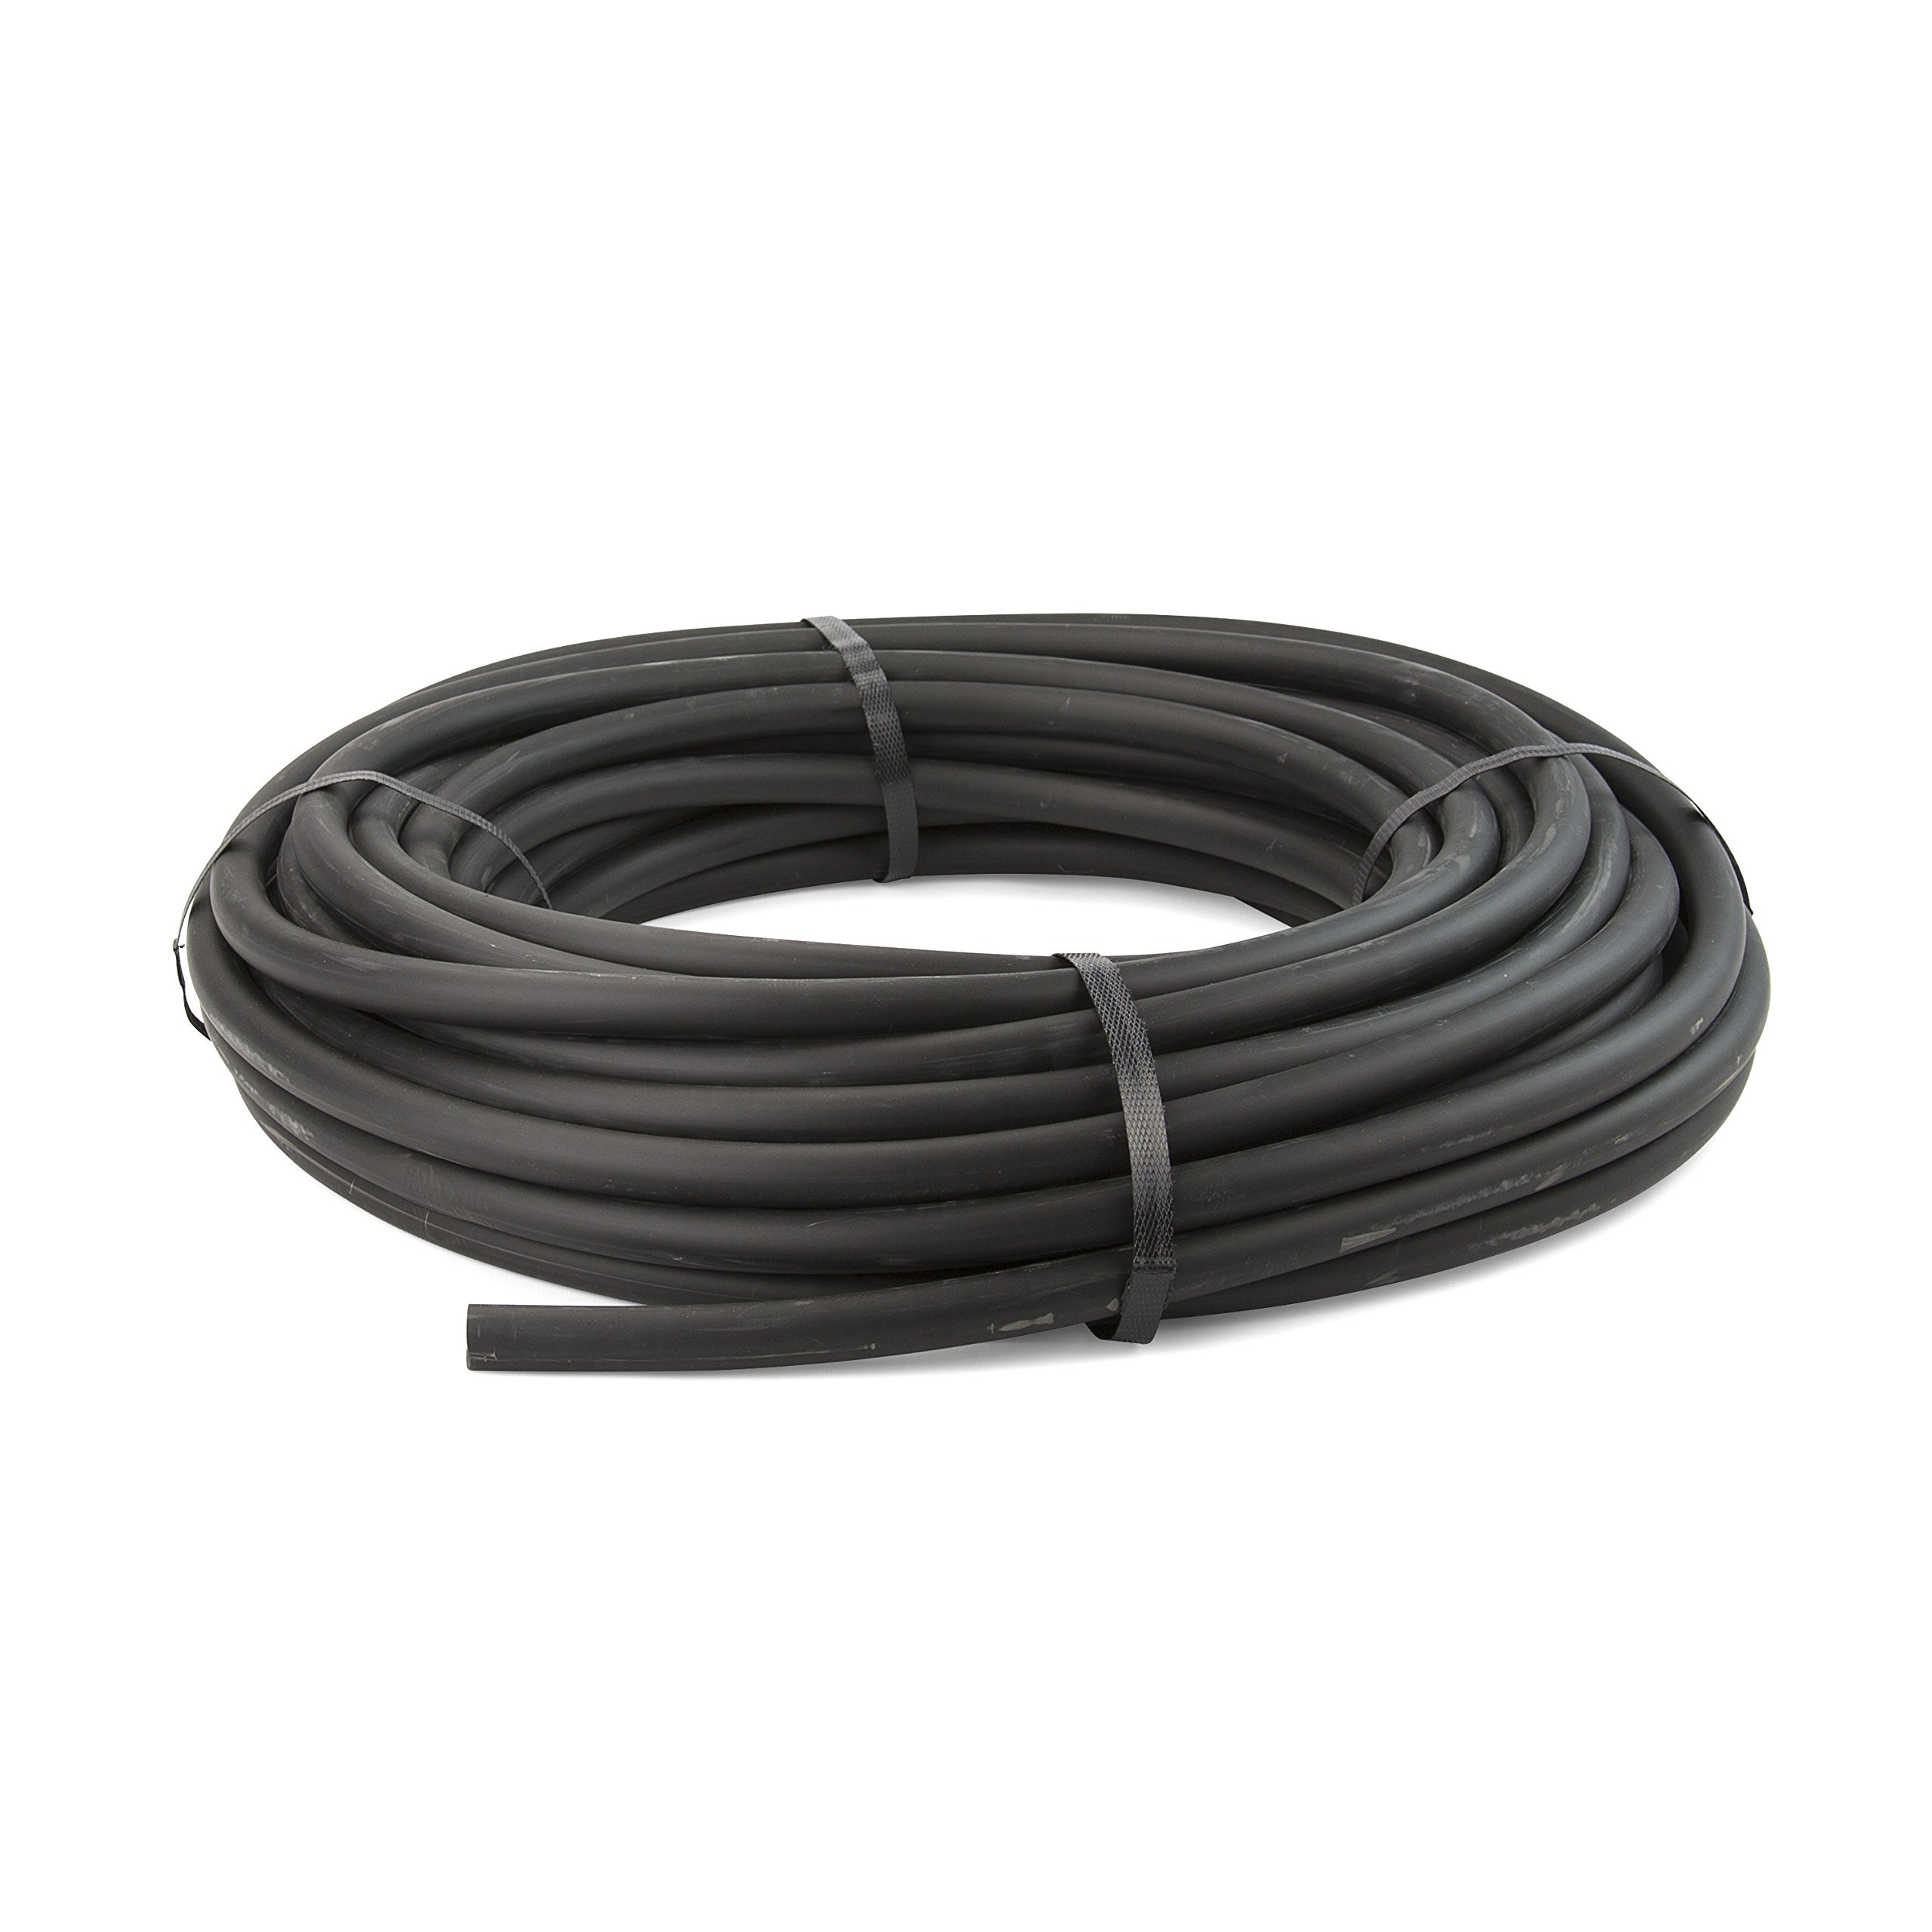 Aquascape Weighted Tubing 3/8-inch x 100-feet for Pond Aerator, Aeration and Plumbing, Black | 61014 by Aquascape